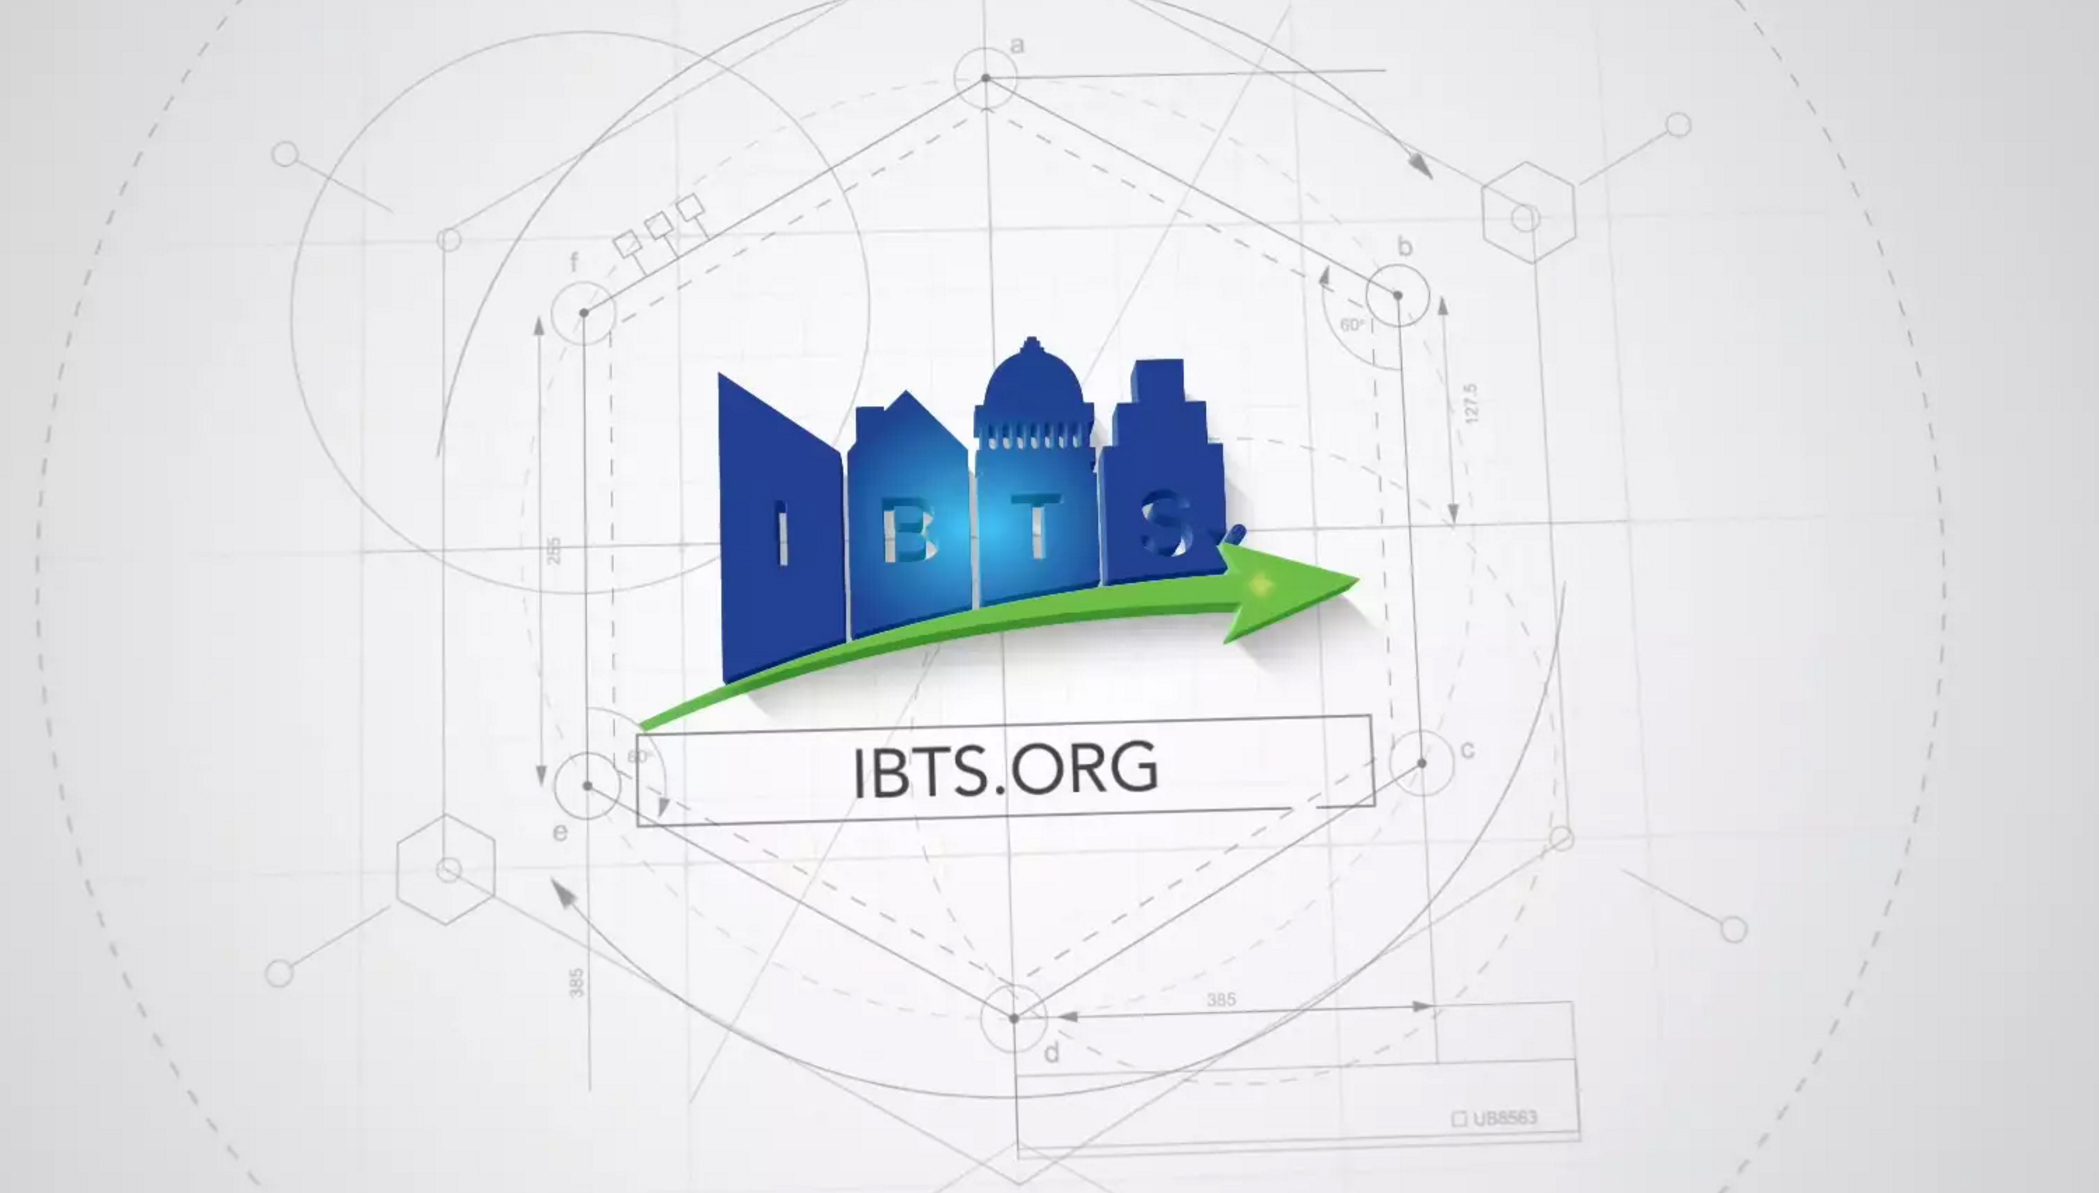 Image of the IBTS logo with IBTS.org below.